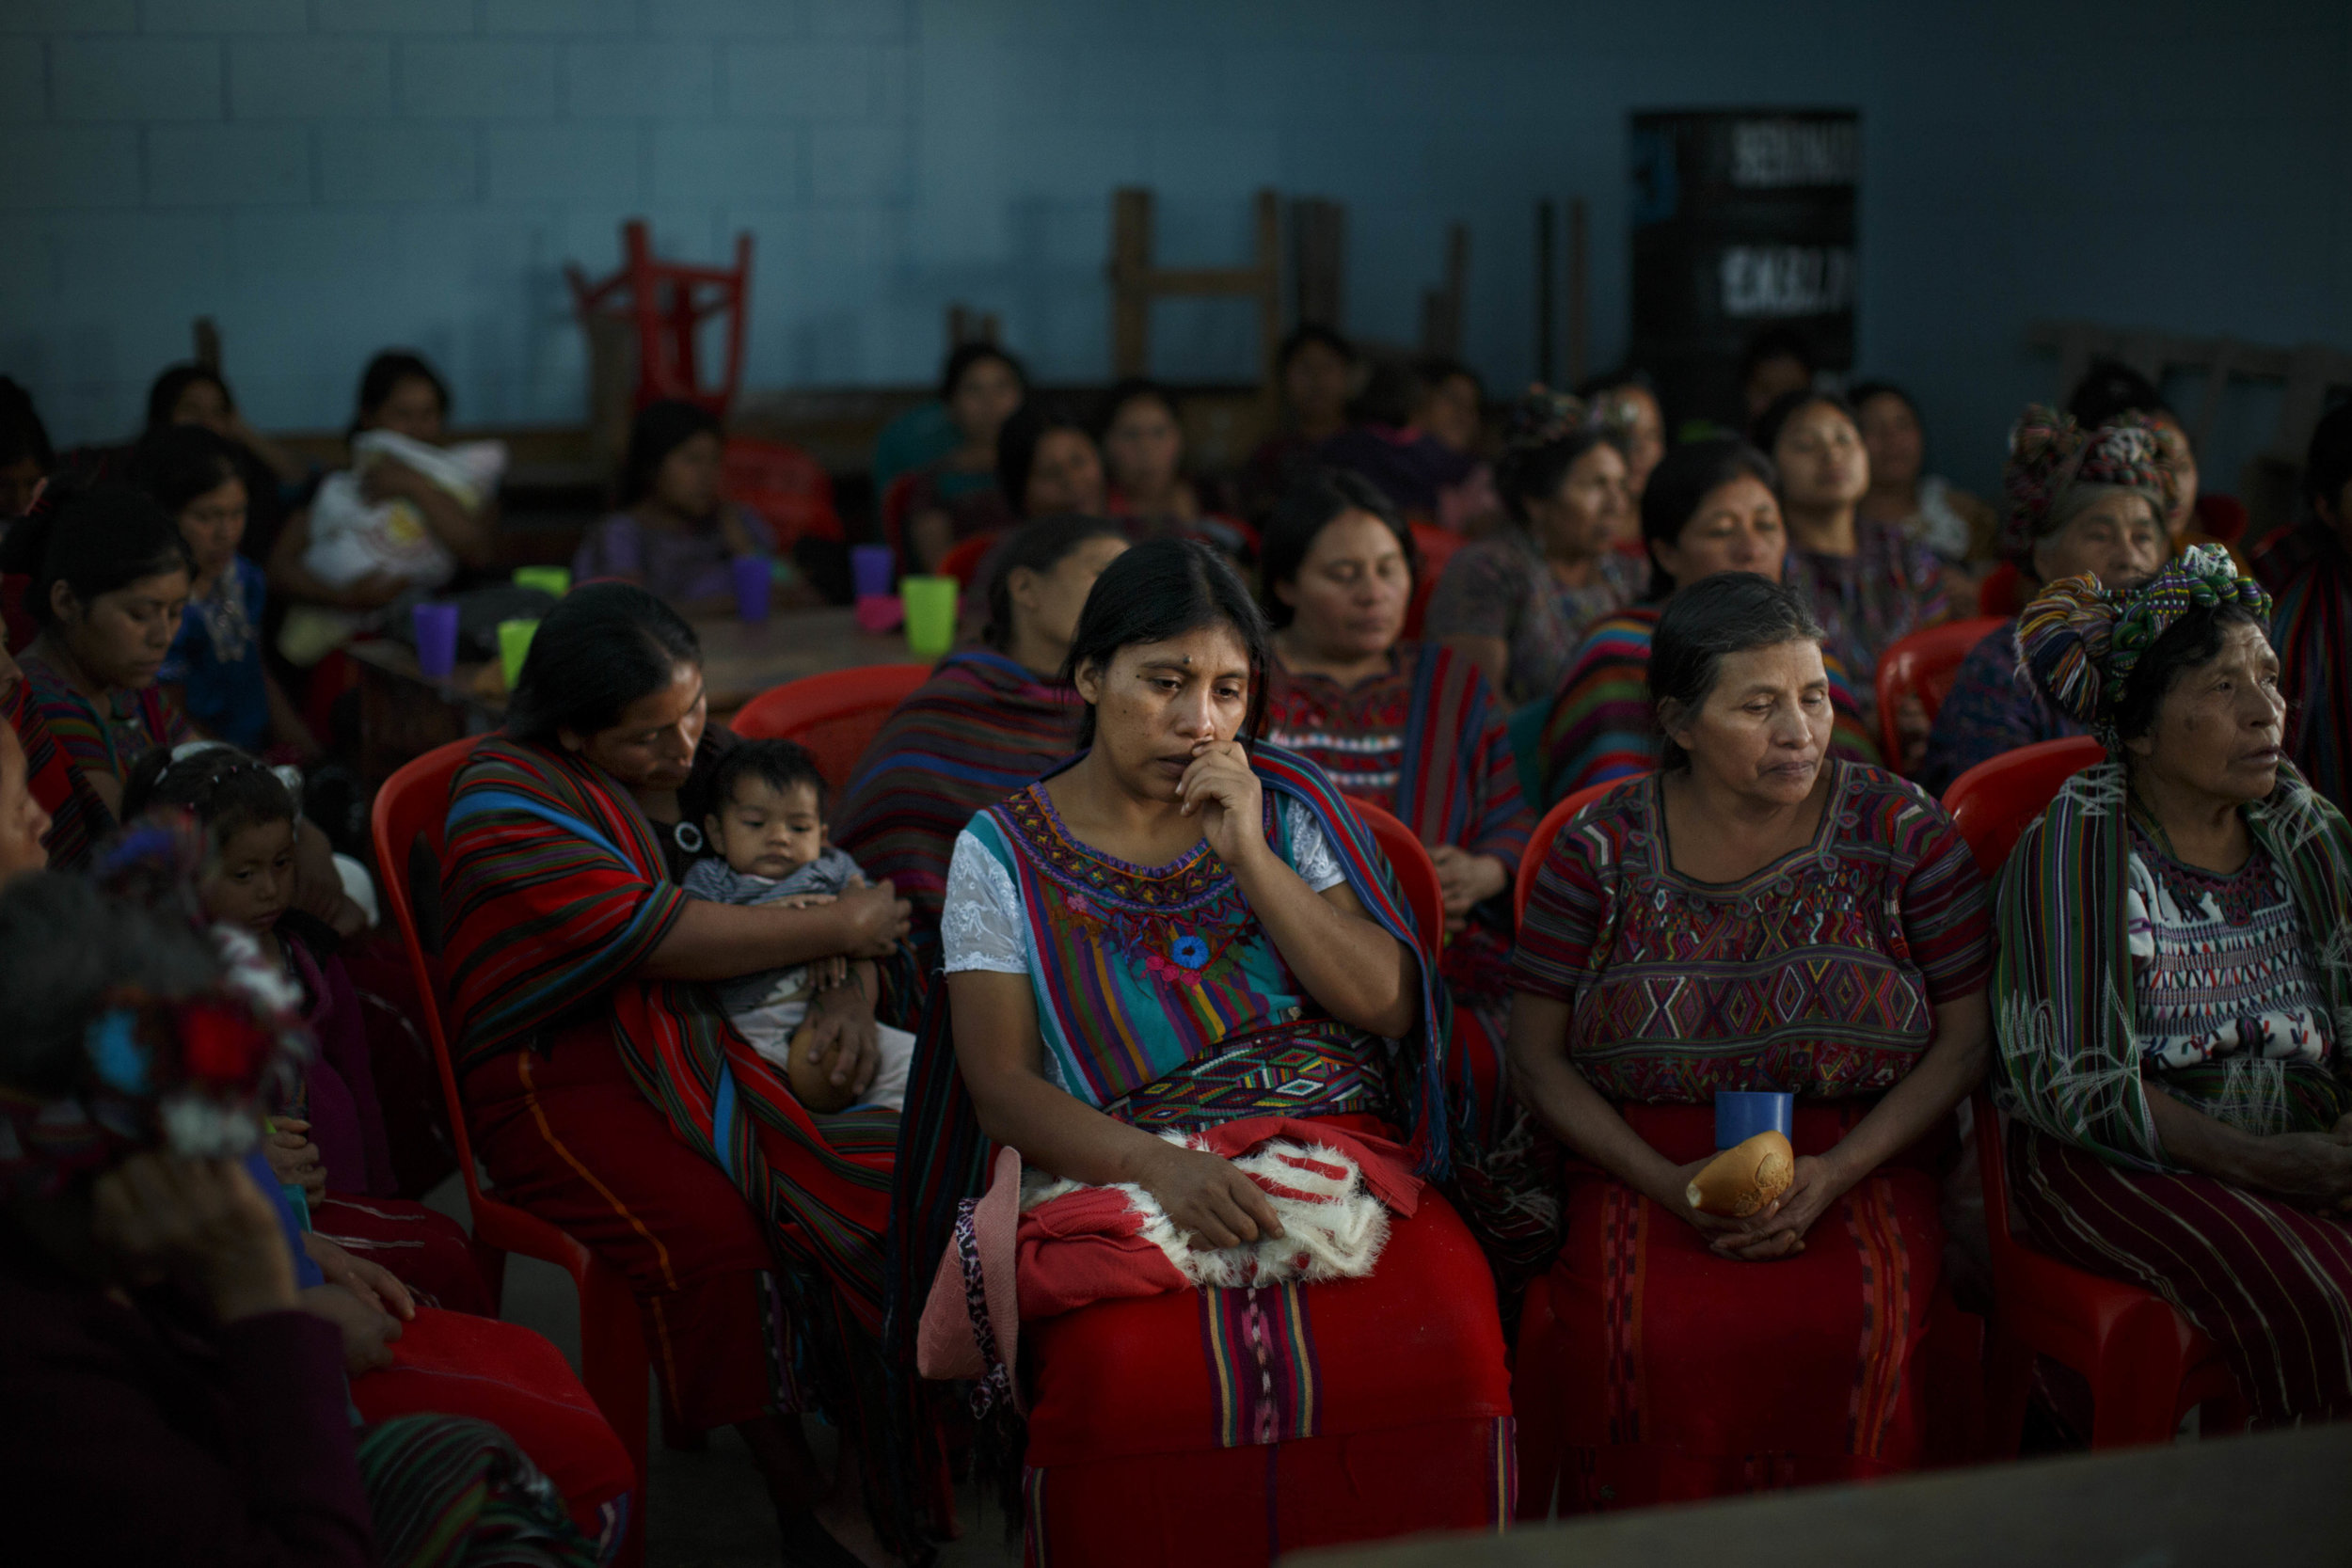 Commissioned for World Health Day 2018 to document increased access to health care in the predominantly rural and indigenous region of Quiché, Guatemala. Photos were featured in a public campaign across public transport stations in Guatemala City.  Photo:  Women in the village of Quiché, Guatemala listen to a talk on maternal health, child nutrition, family planning and domestic violence.